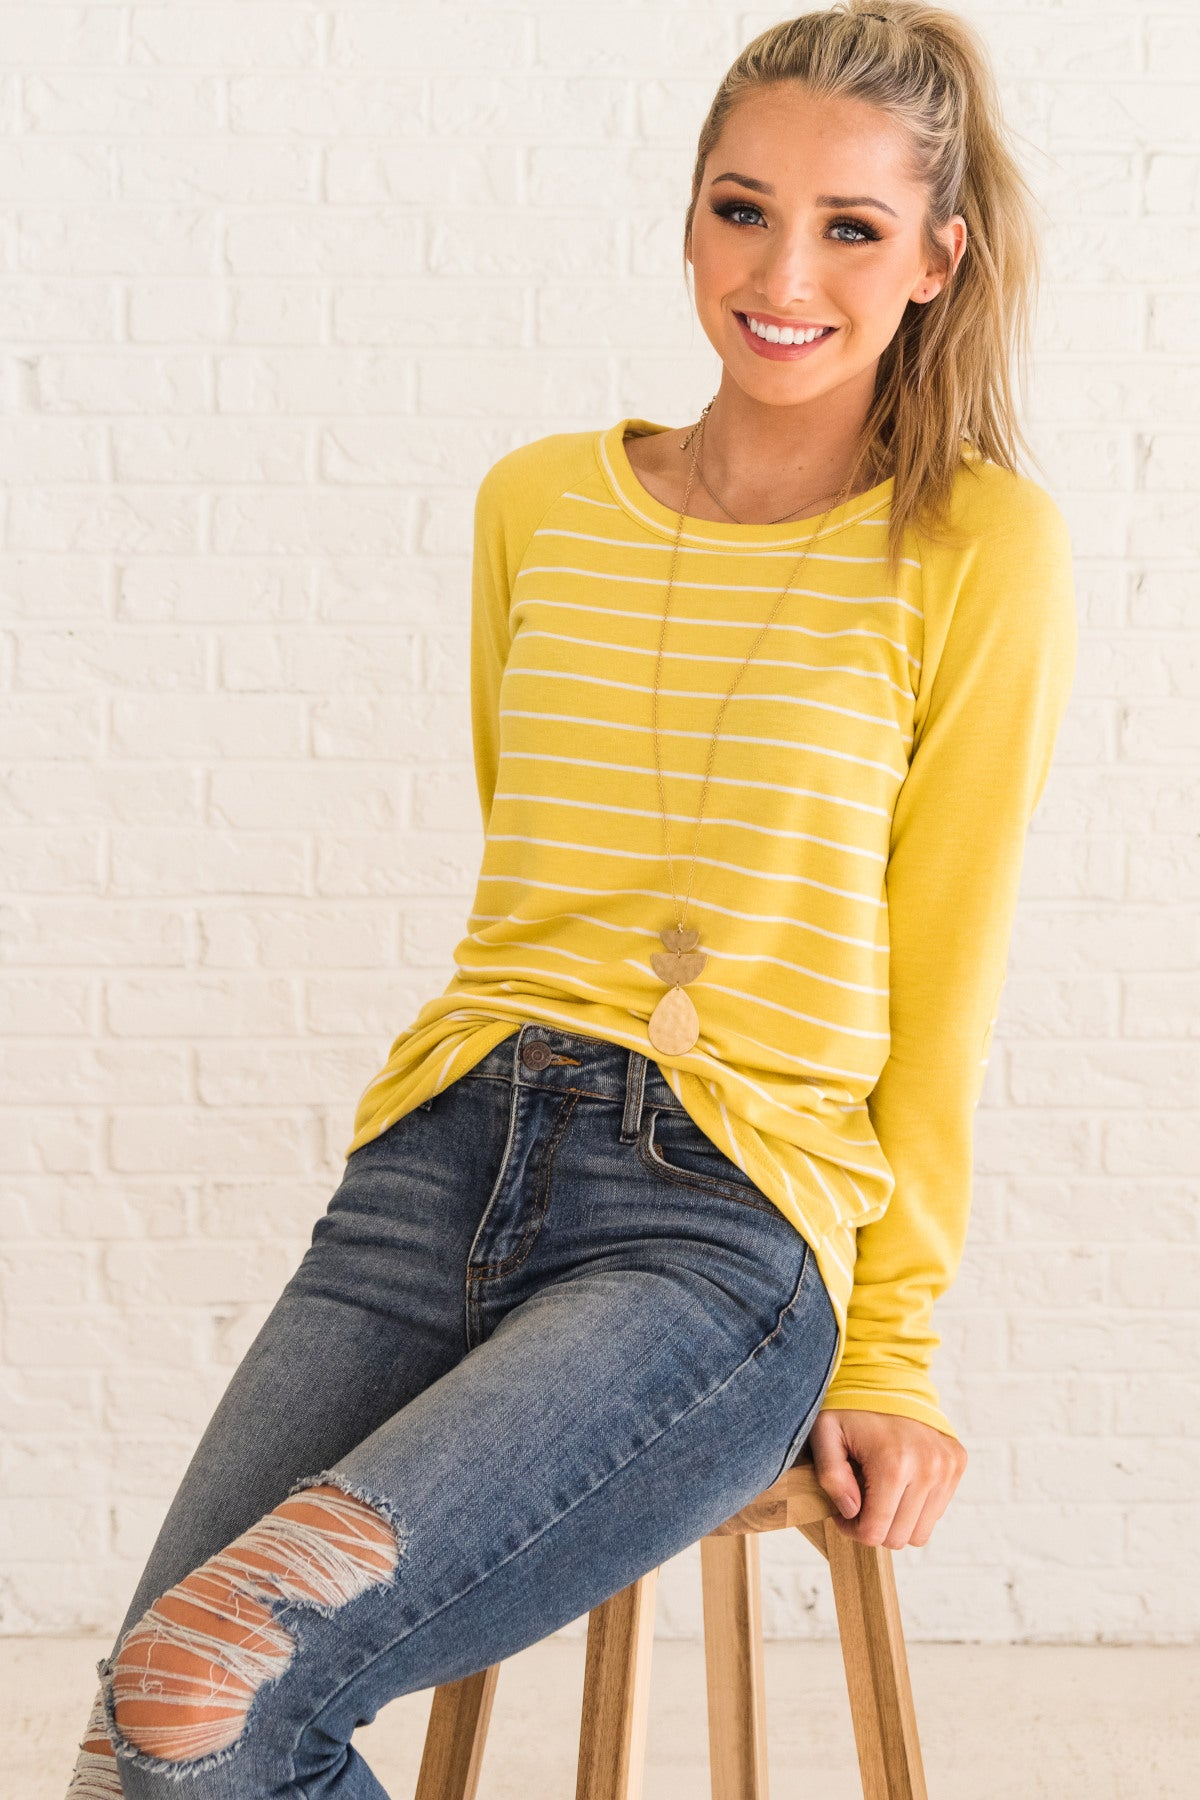 Yellow Striped Long Sleeve Soft Pullover Top with Elbow Patches and Color Block Style